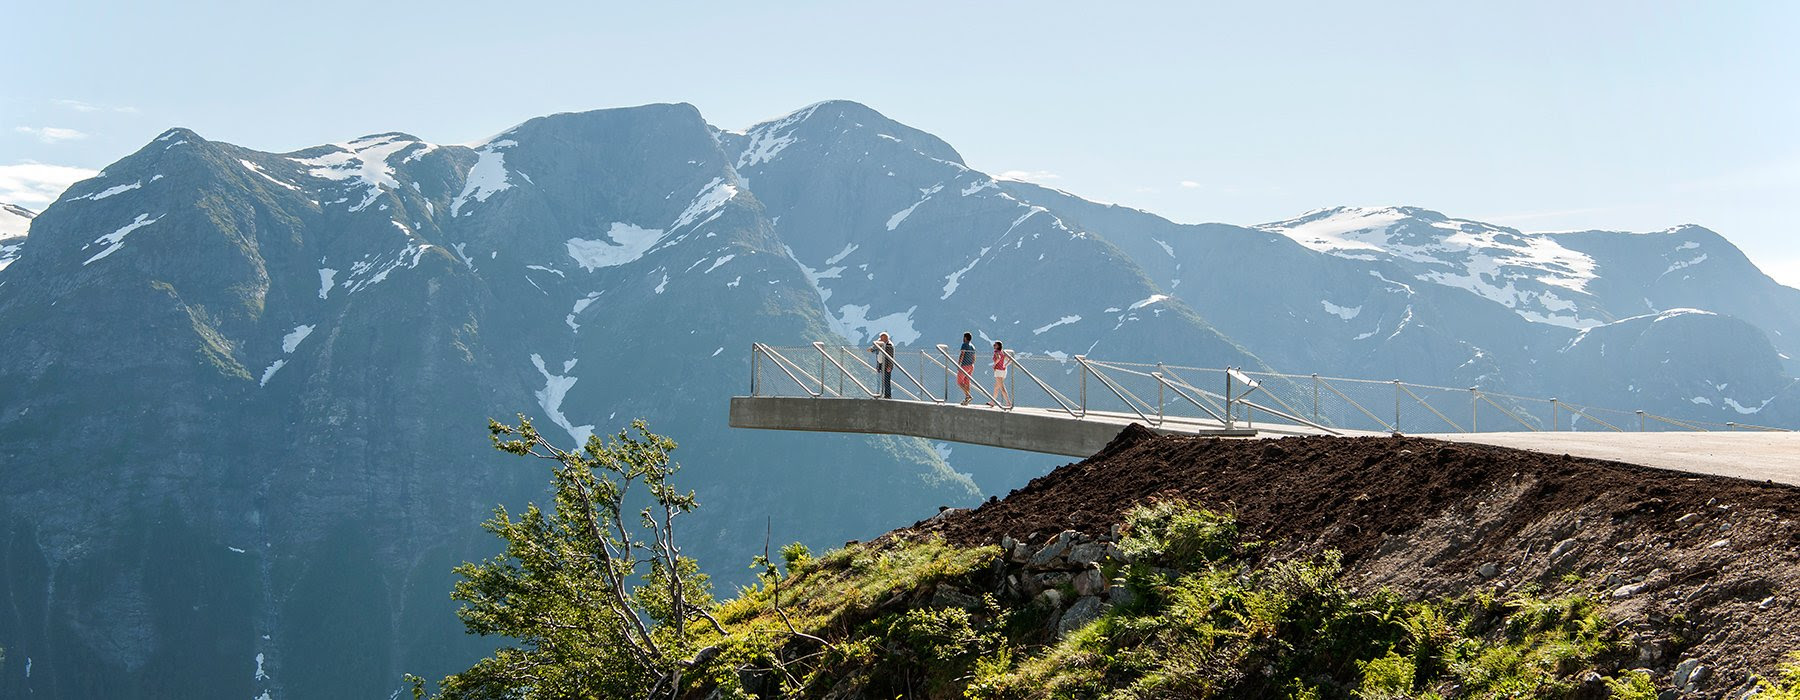 utsikten viewpoint at gaularfjellet opens along a national tourist route in norway